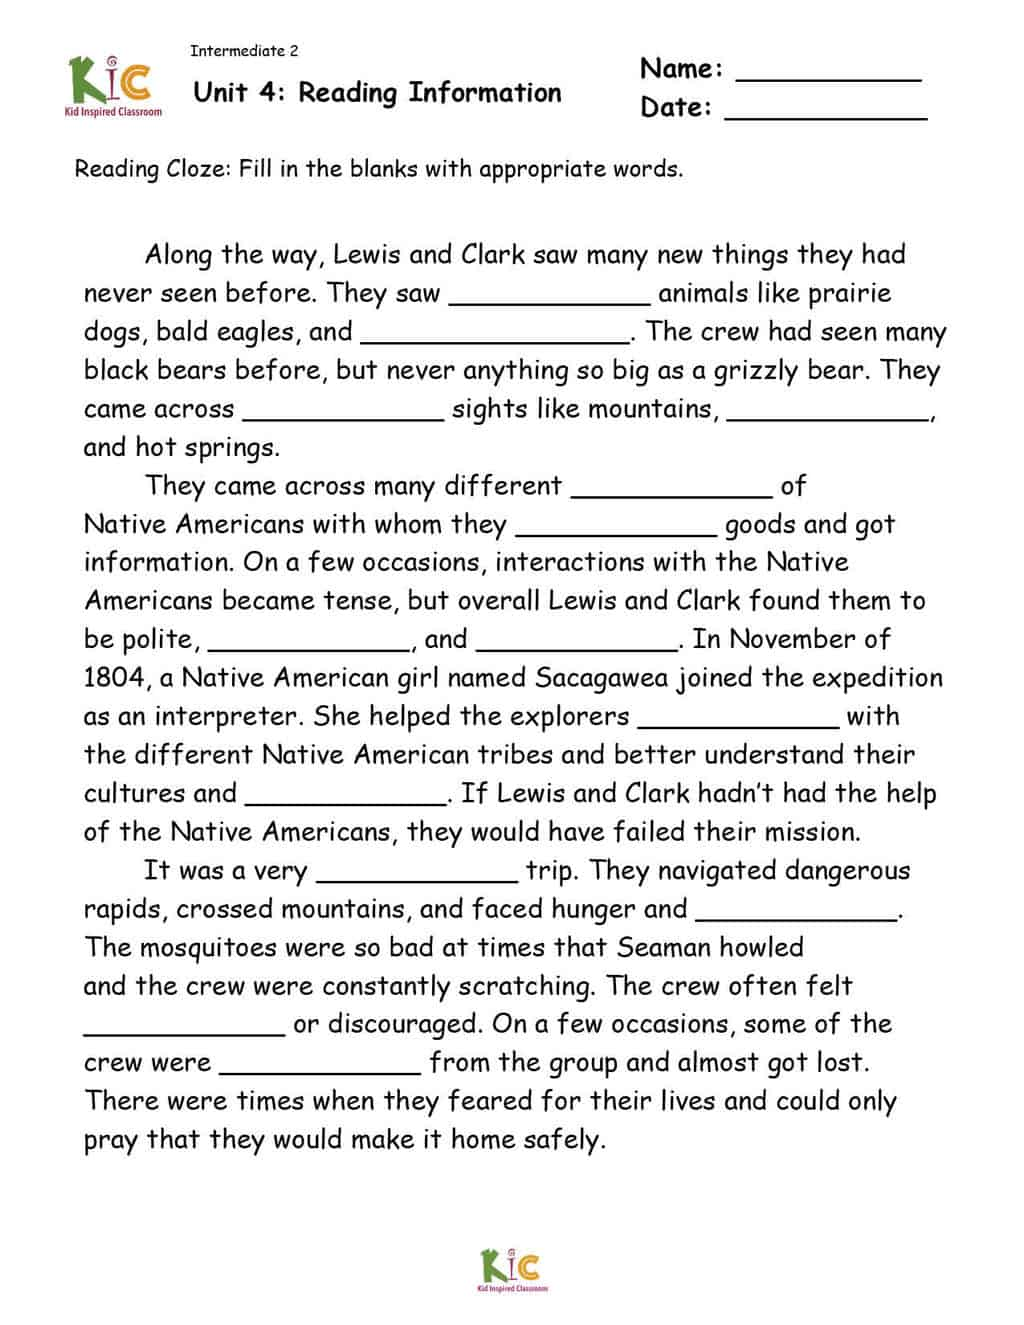 Lewis and Clark Reading Cloze for ESL Reading Comprehension